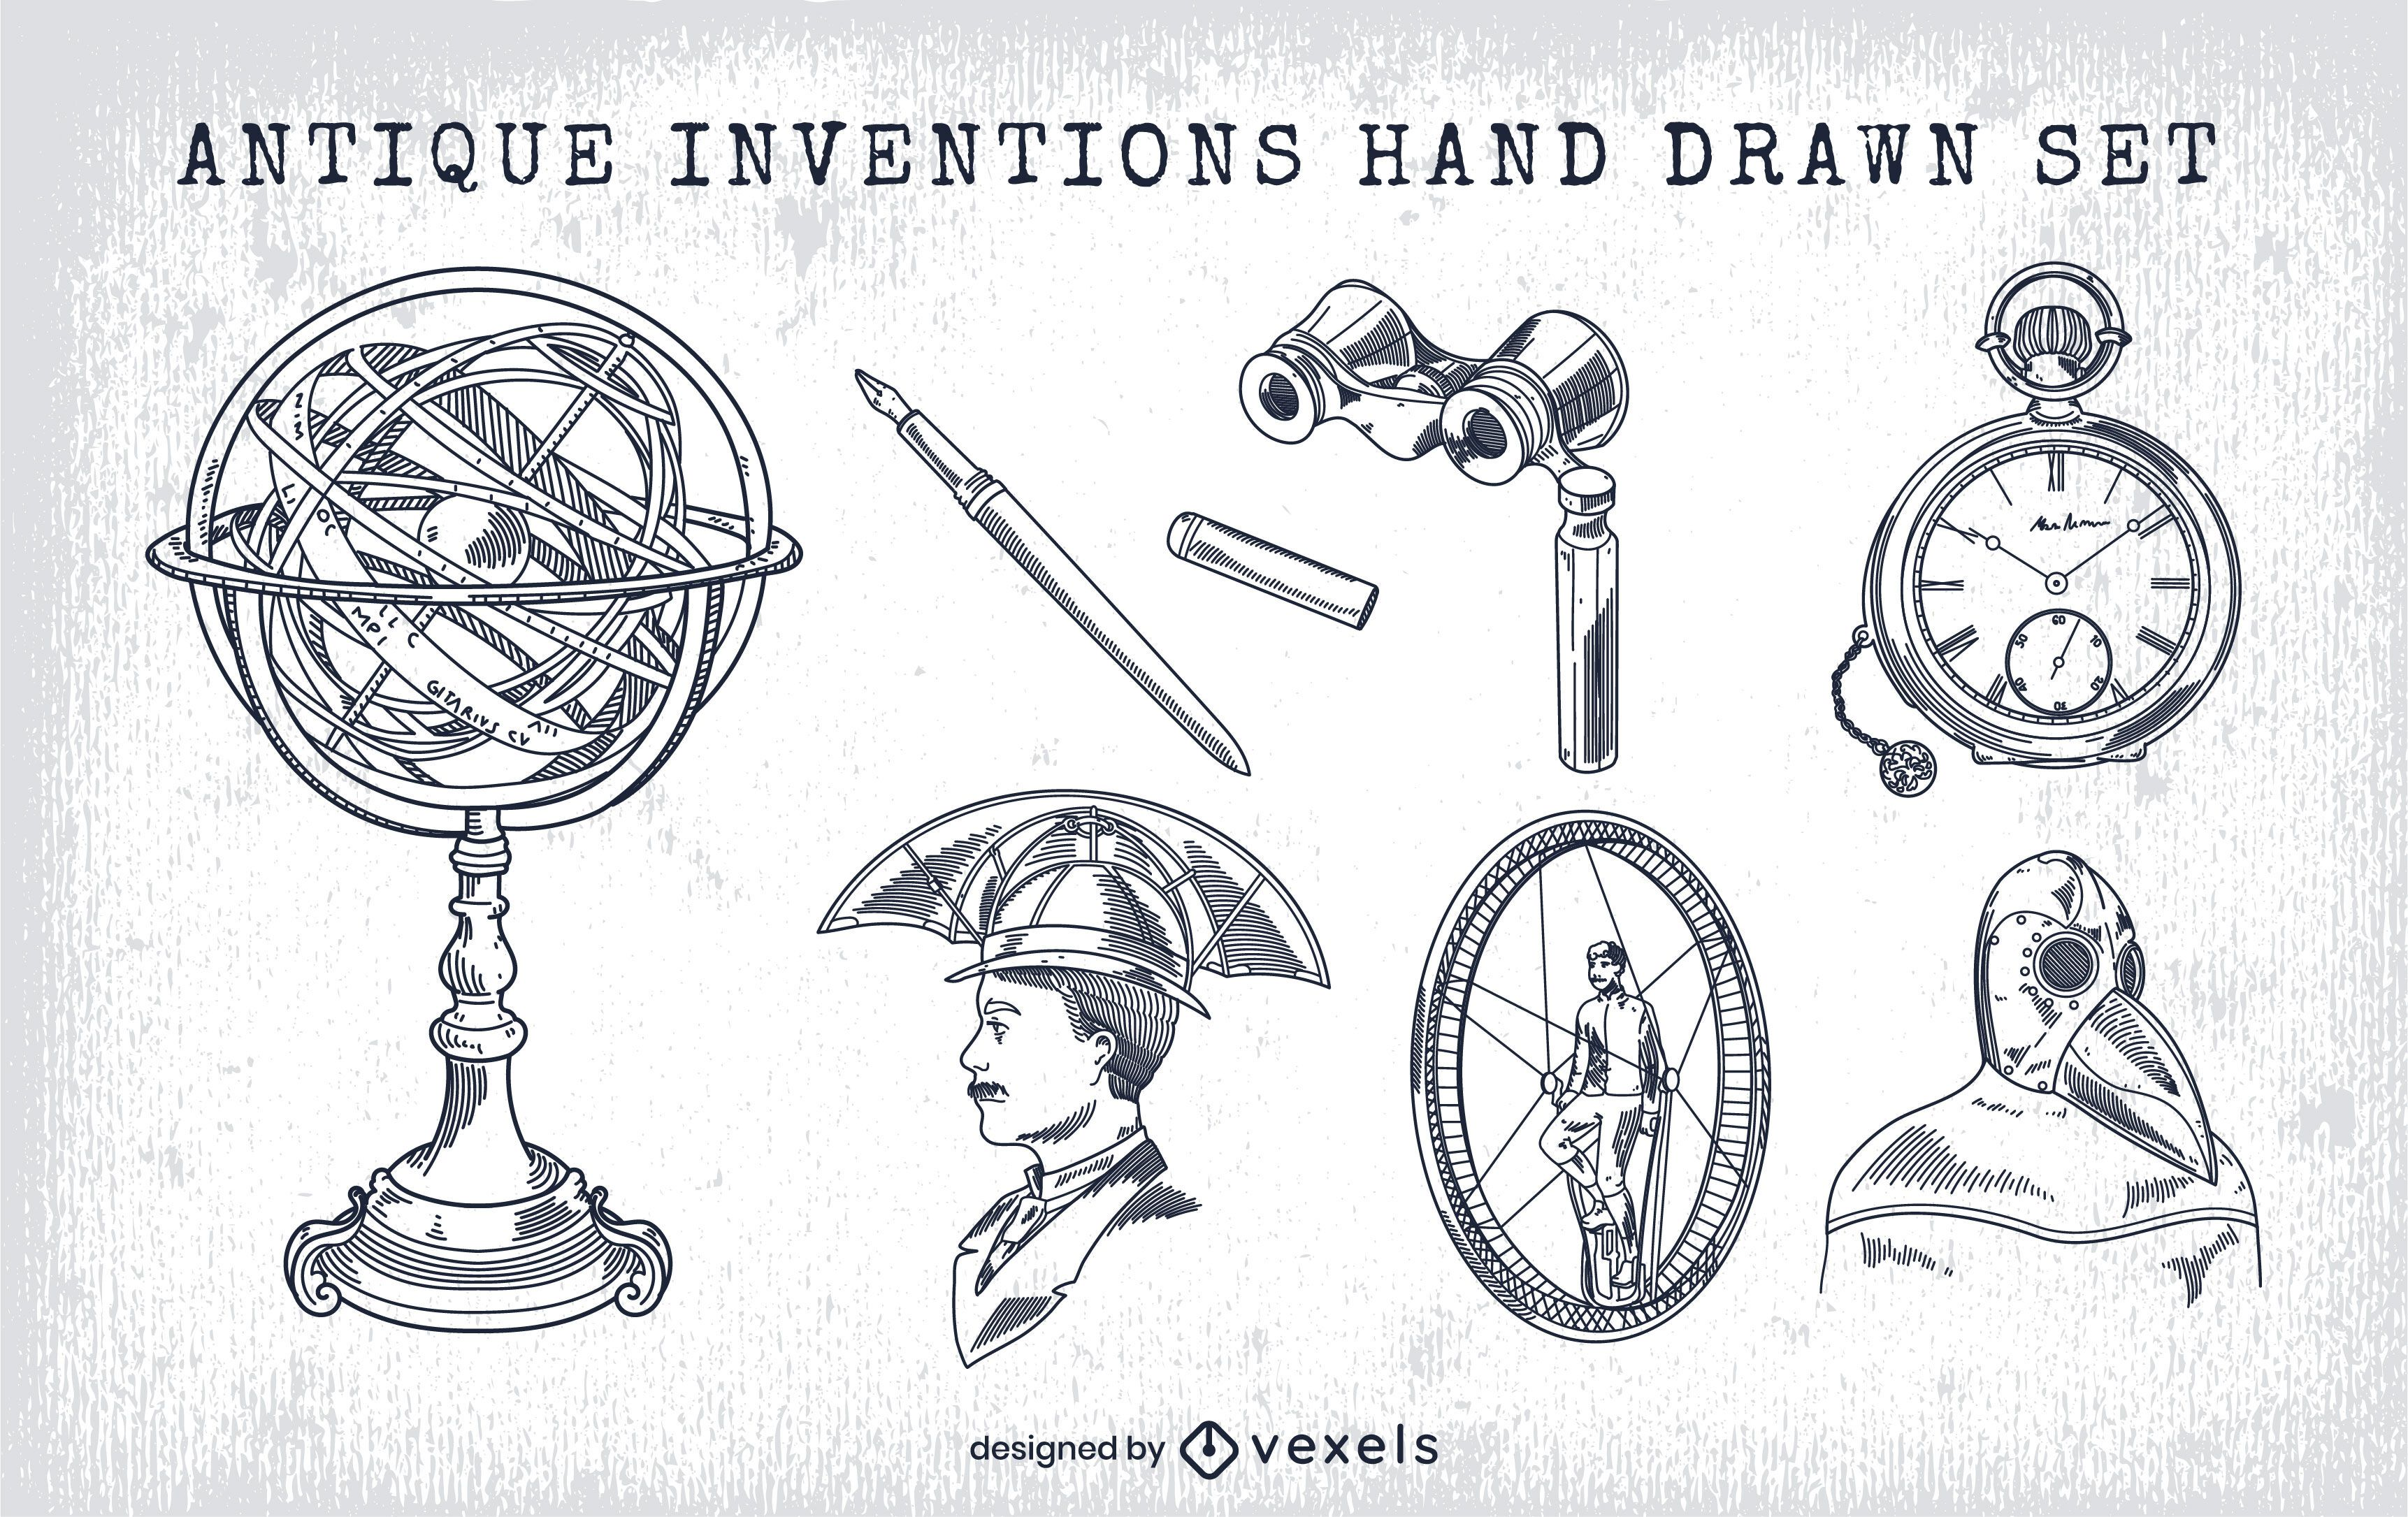 Hand drawn vintage inventions